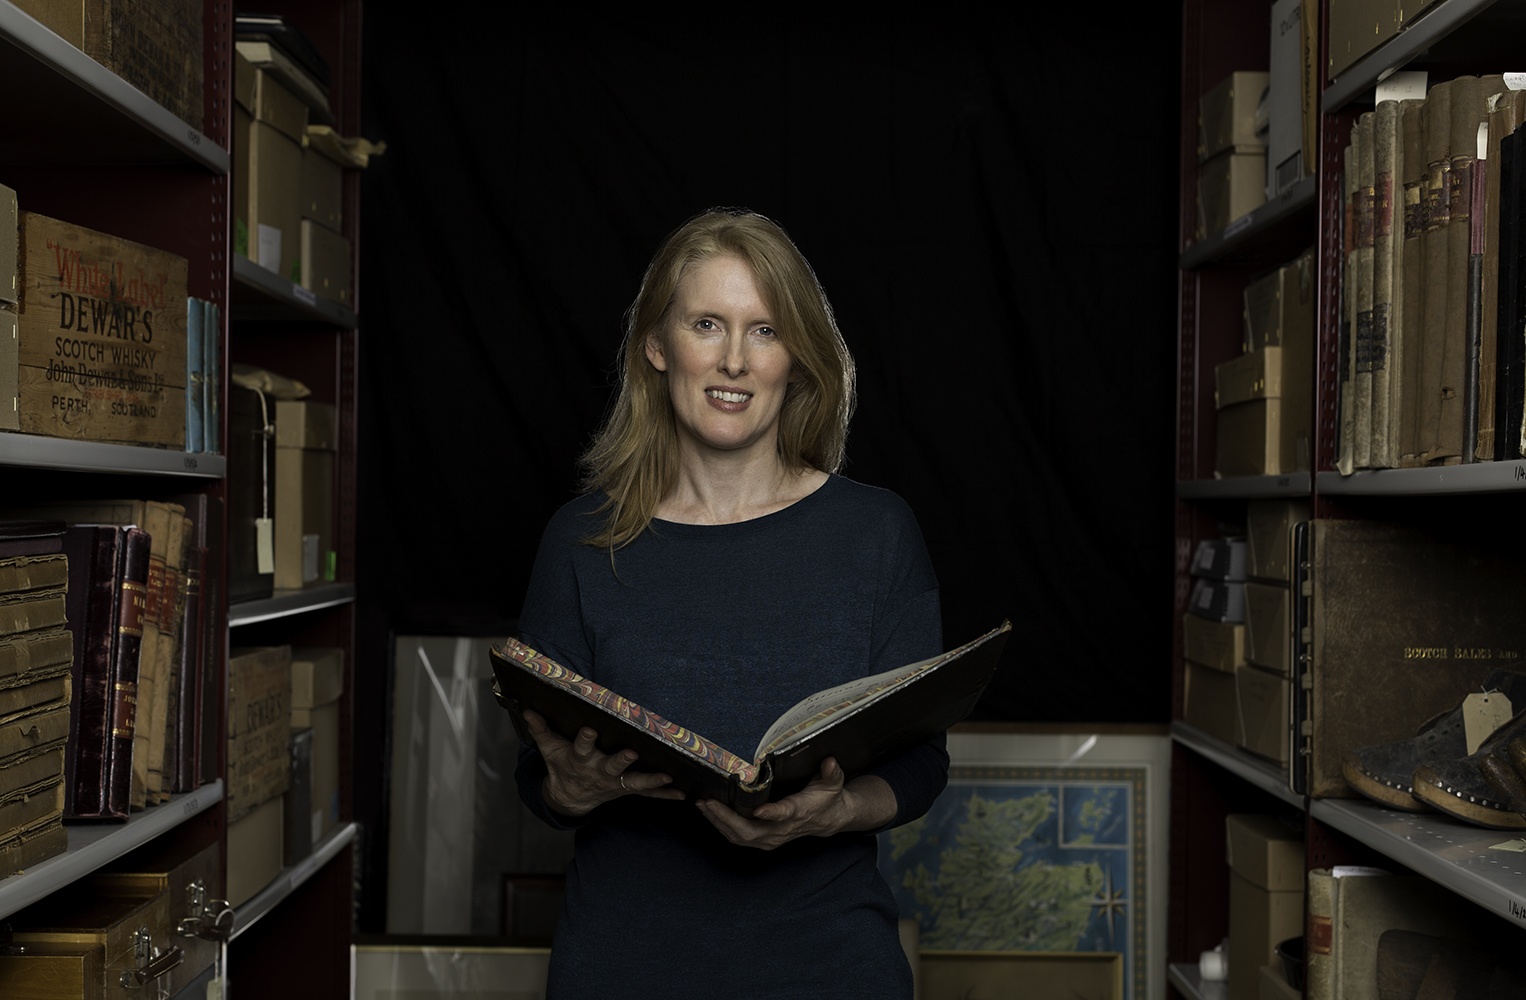 Jacqui Seargeant in the Scotch whisky archive